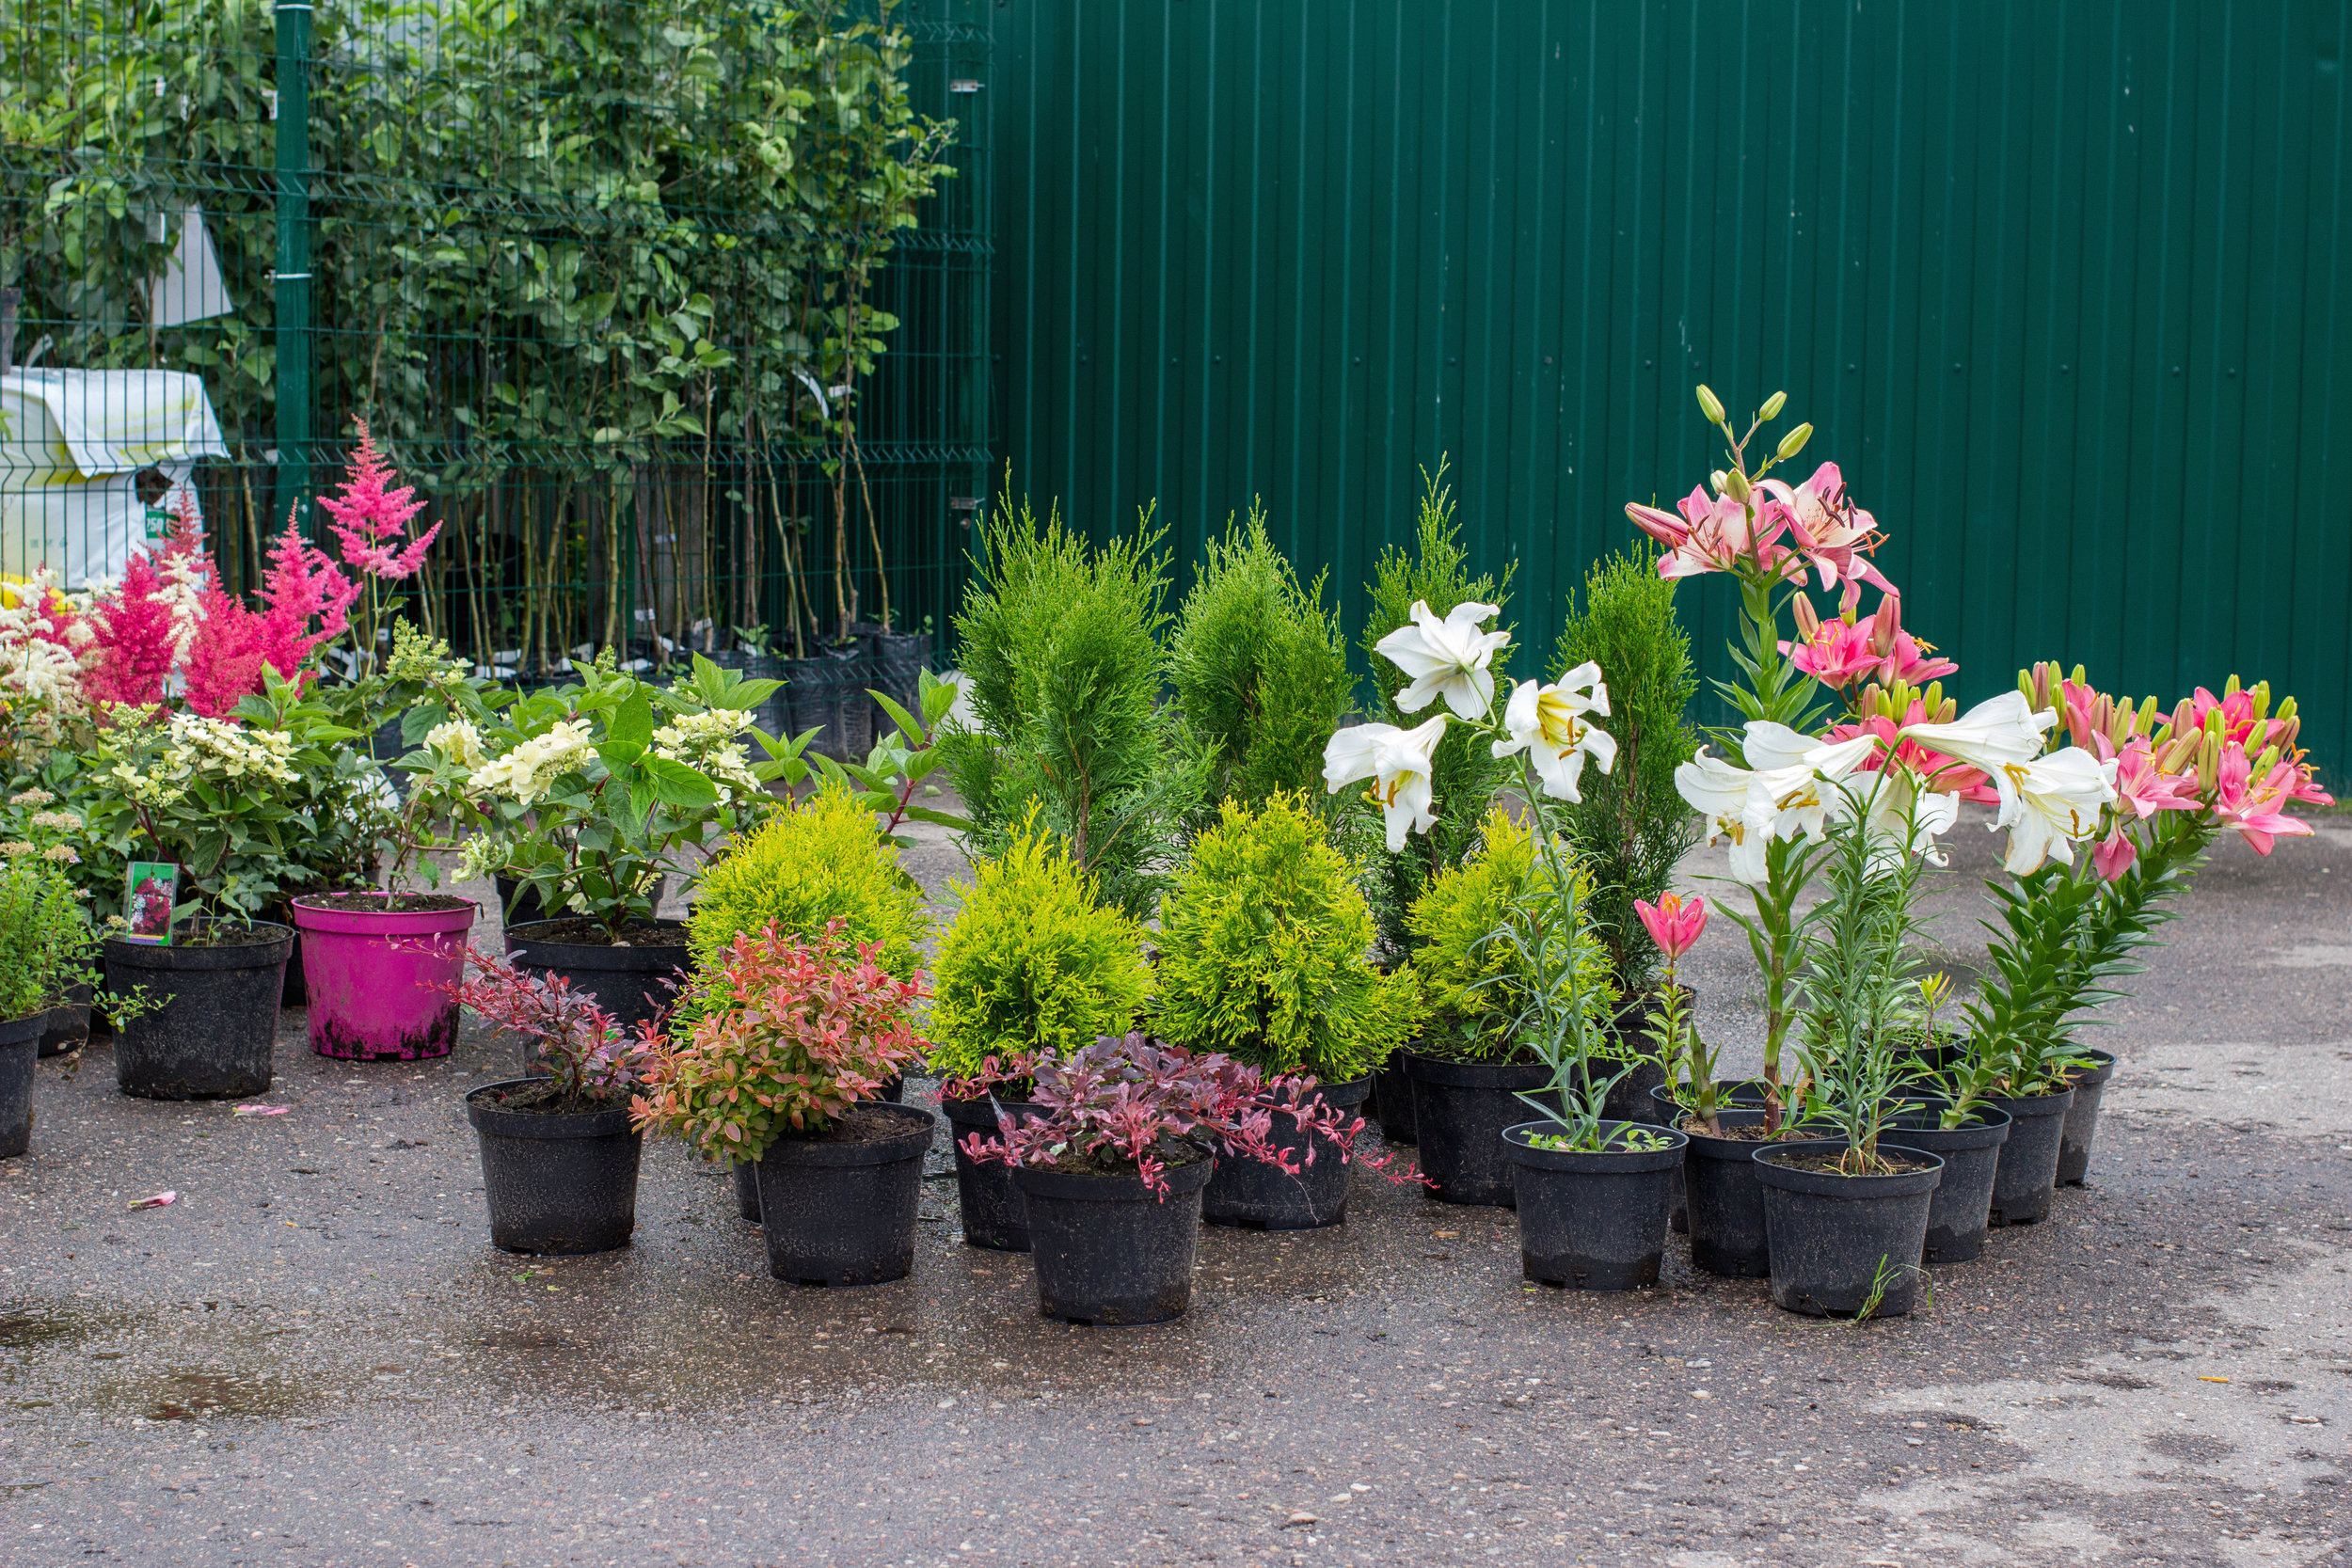 7 Qualities to Look for in a Garden Supply Store